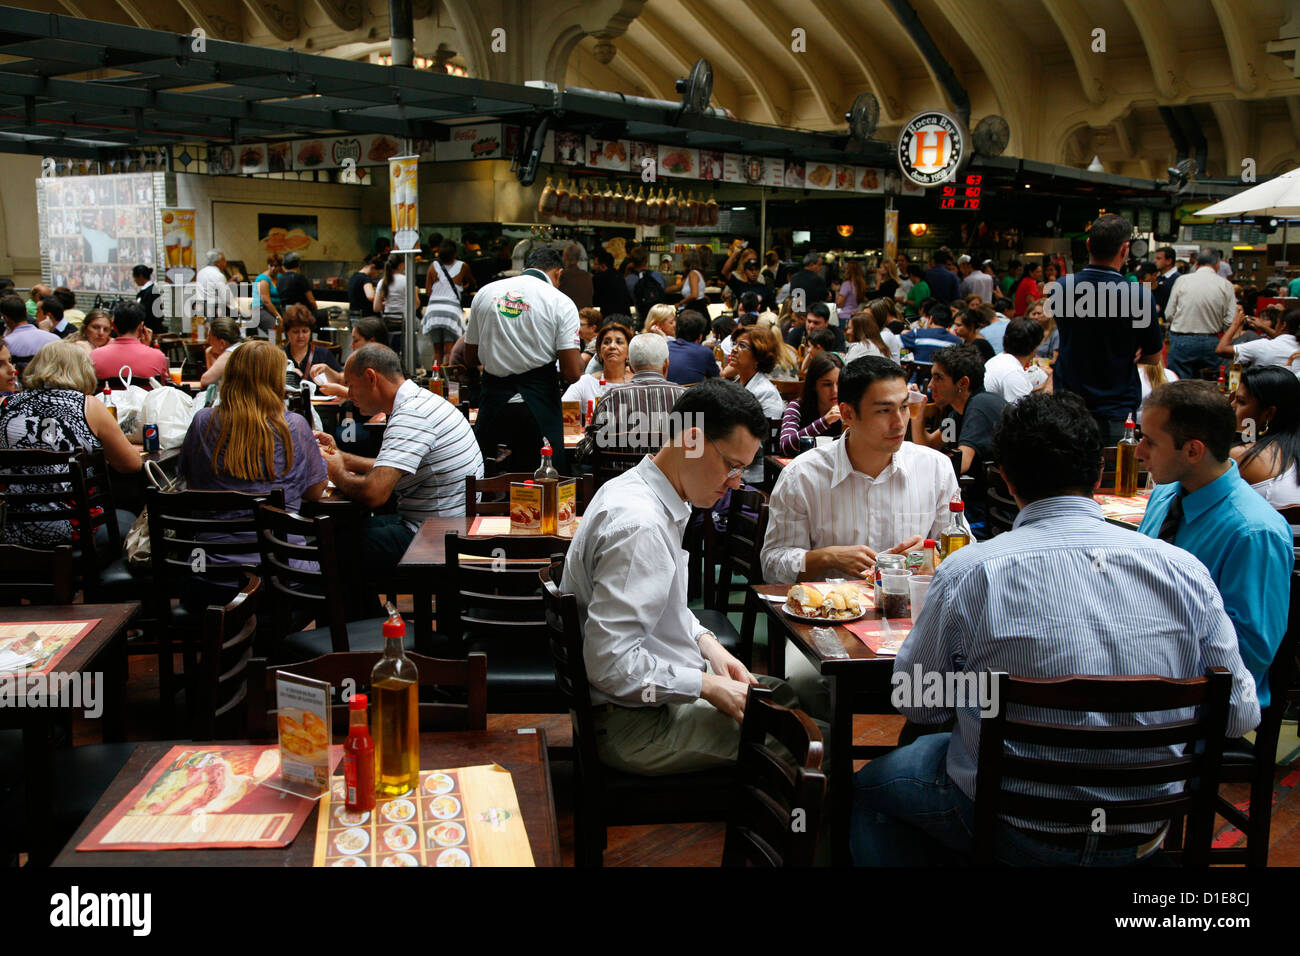 People sitting at a restaurant in Mercado Municipal, Sao Paulo, Brazil, South America - Stock Image